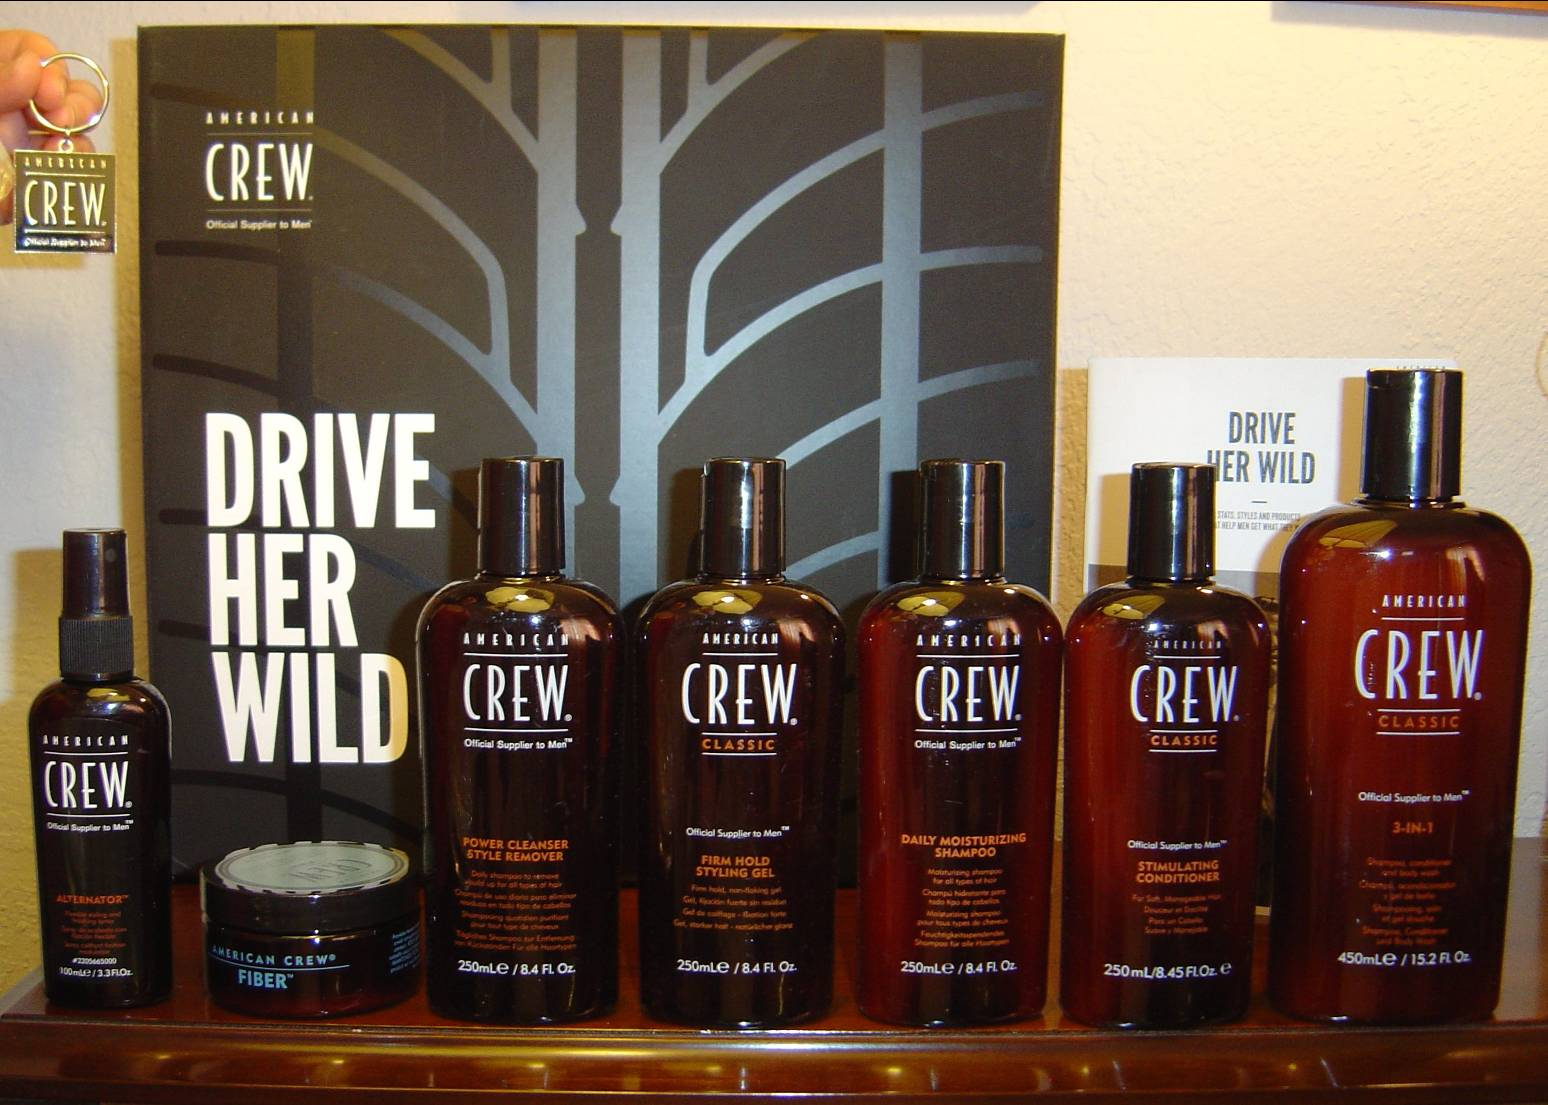 American Crew Hair Drive for Wild Products for Men